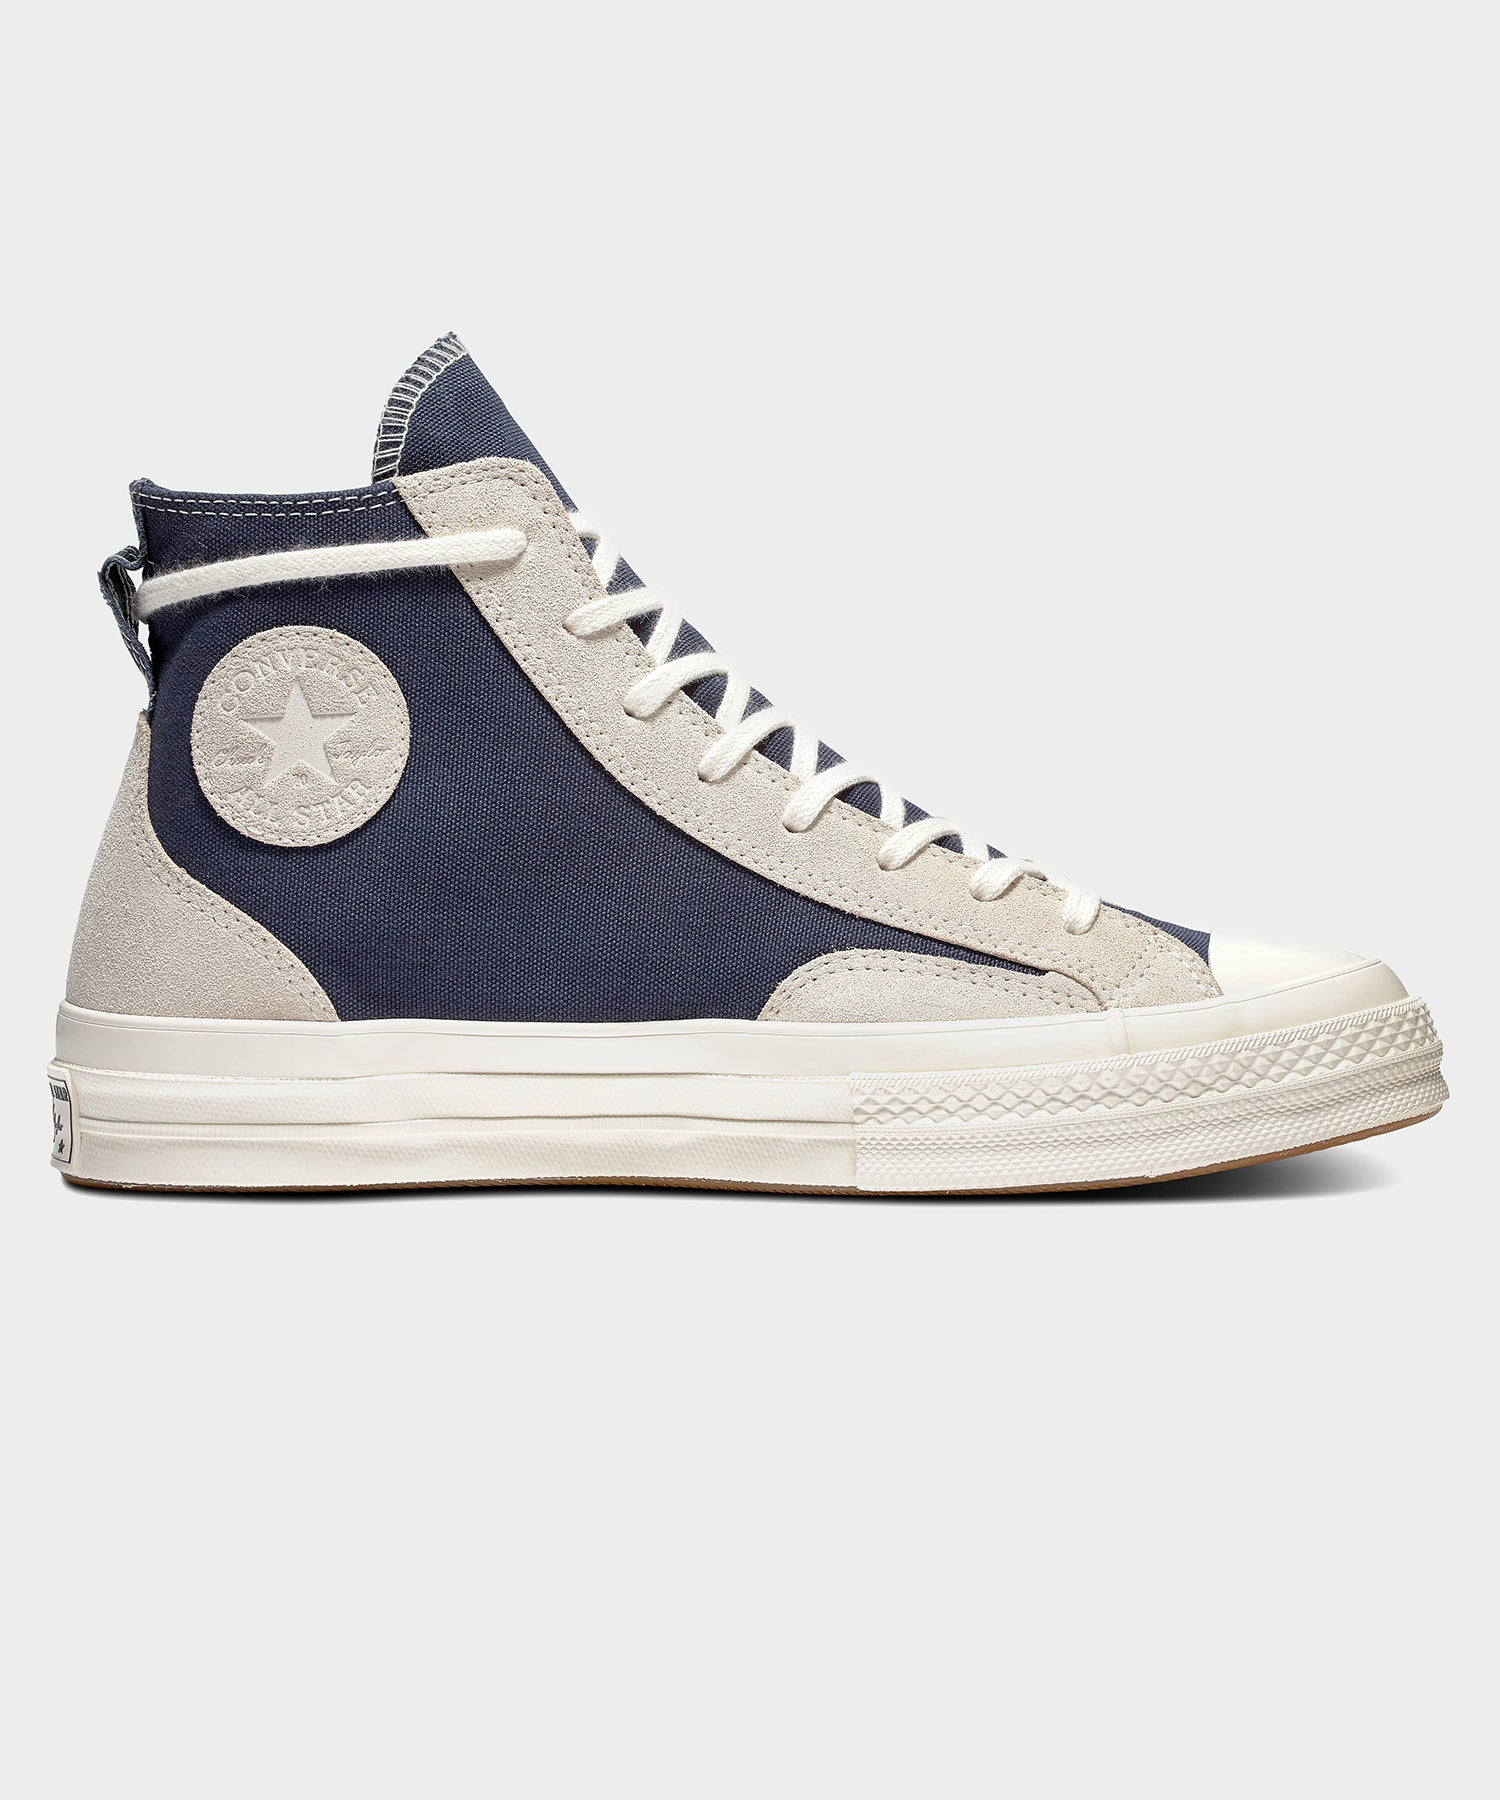 Converse Final Club Chuck 70 in Suede Obsidia